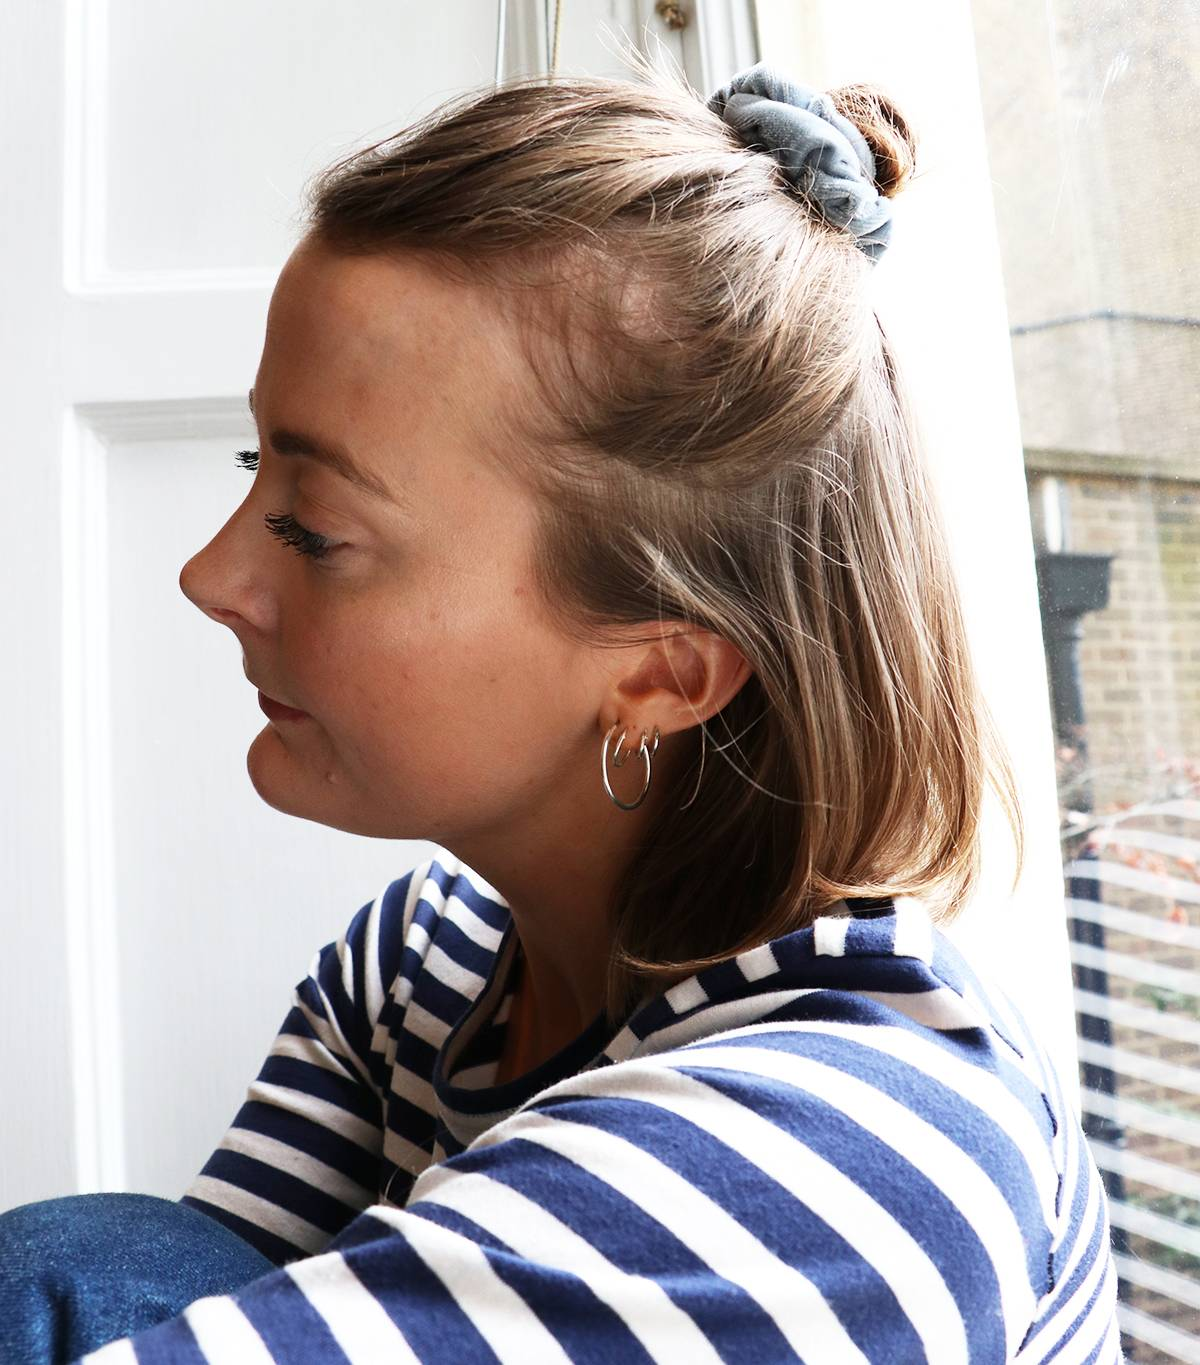 how-to-style-hair-accessories-scrunchies-hairstyles-ways-to-wear-ponytail-messy-halfup.jpg